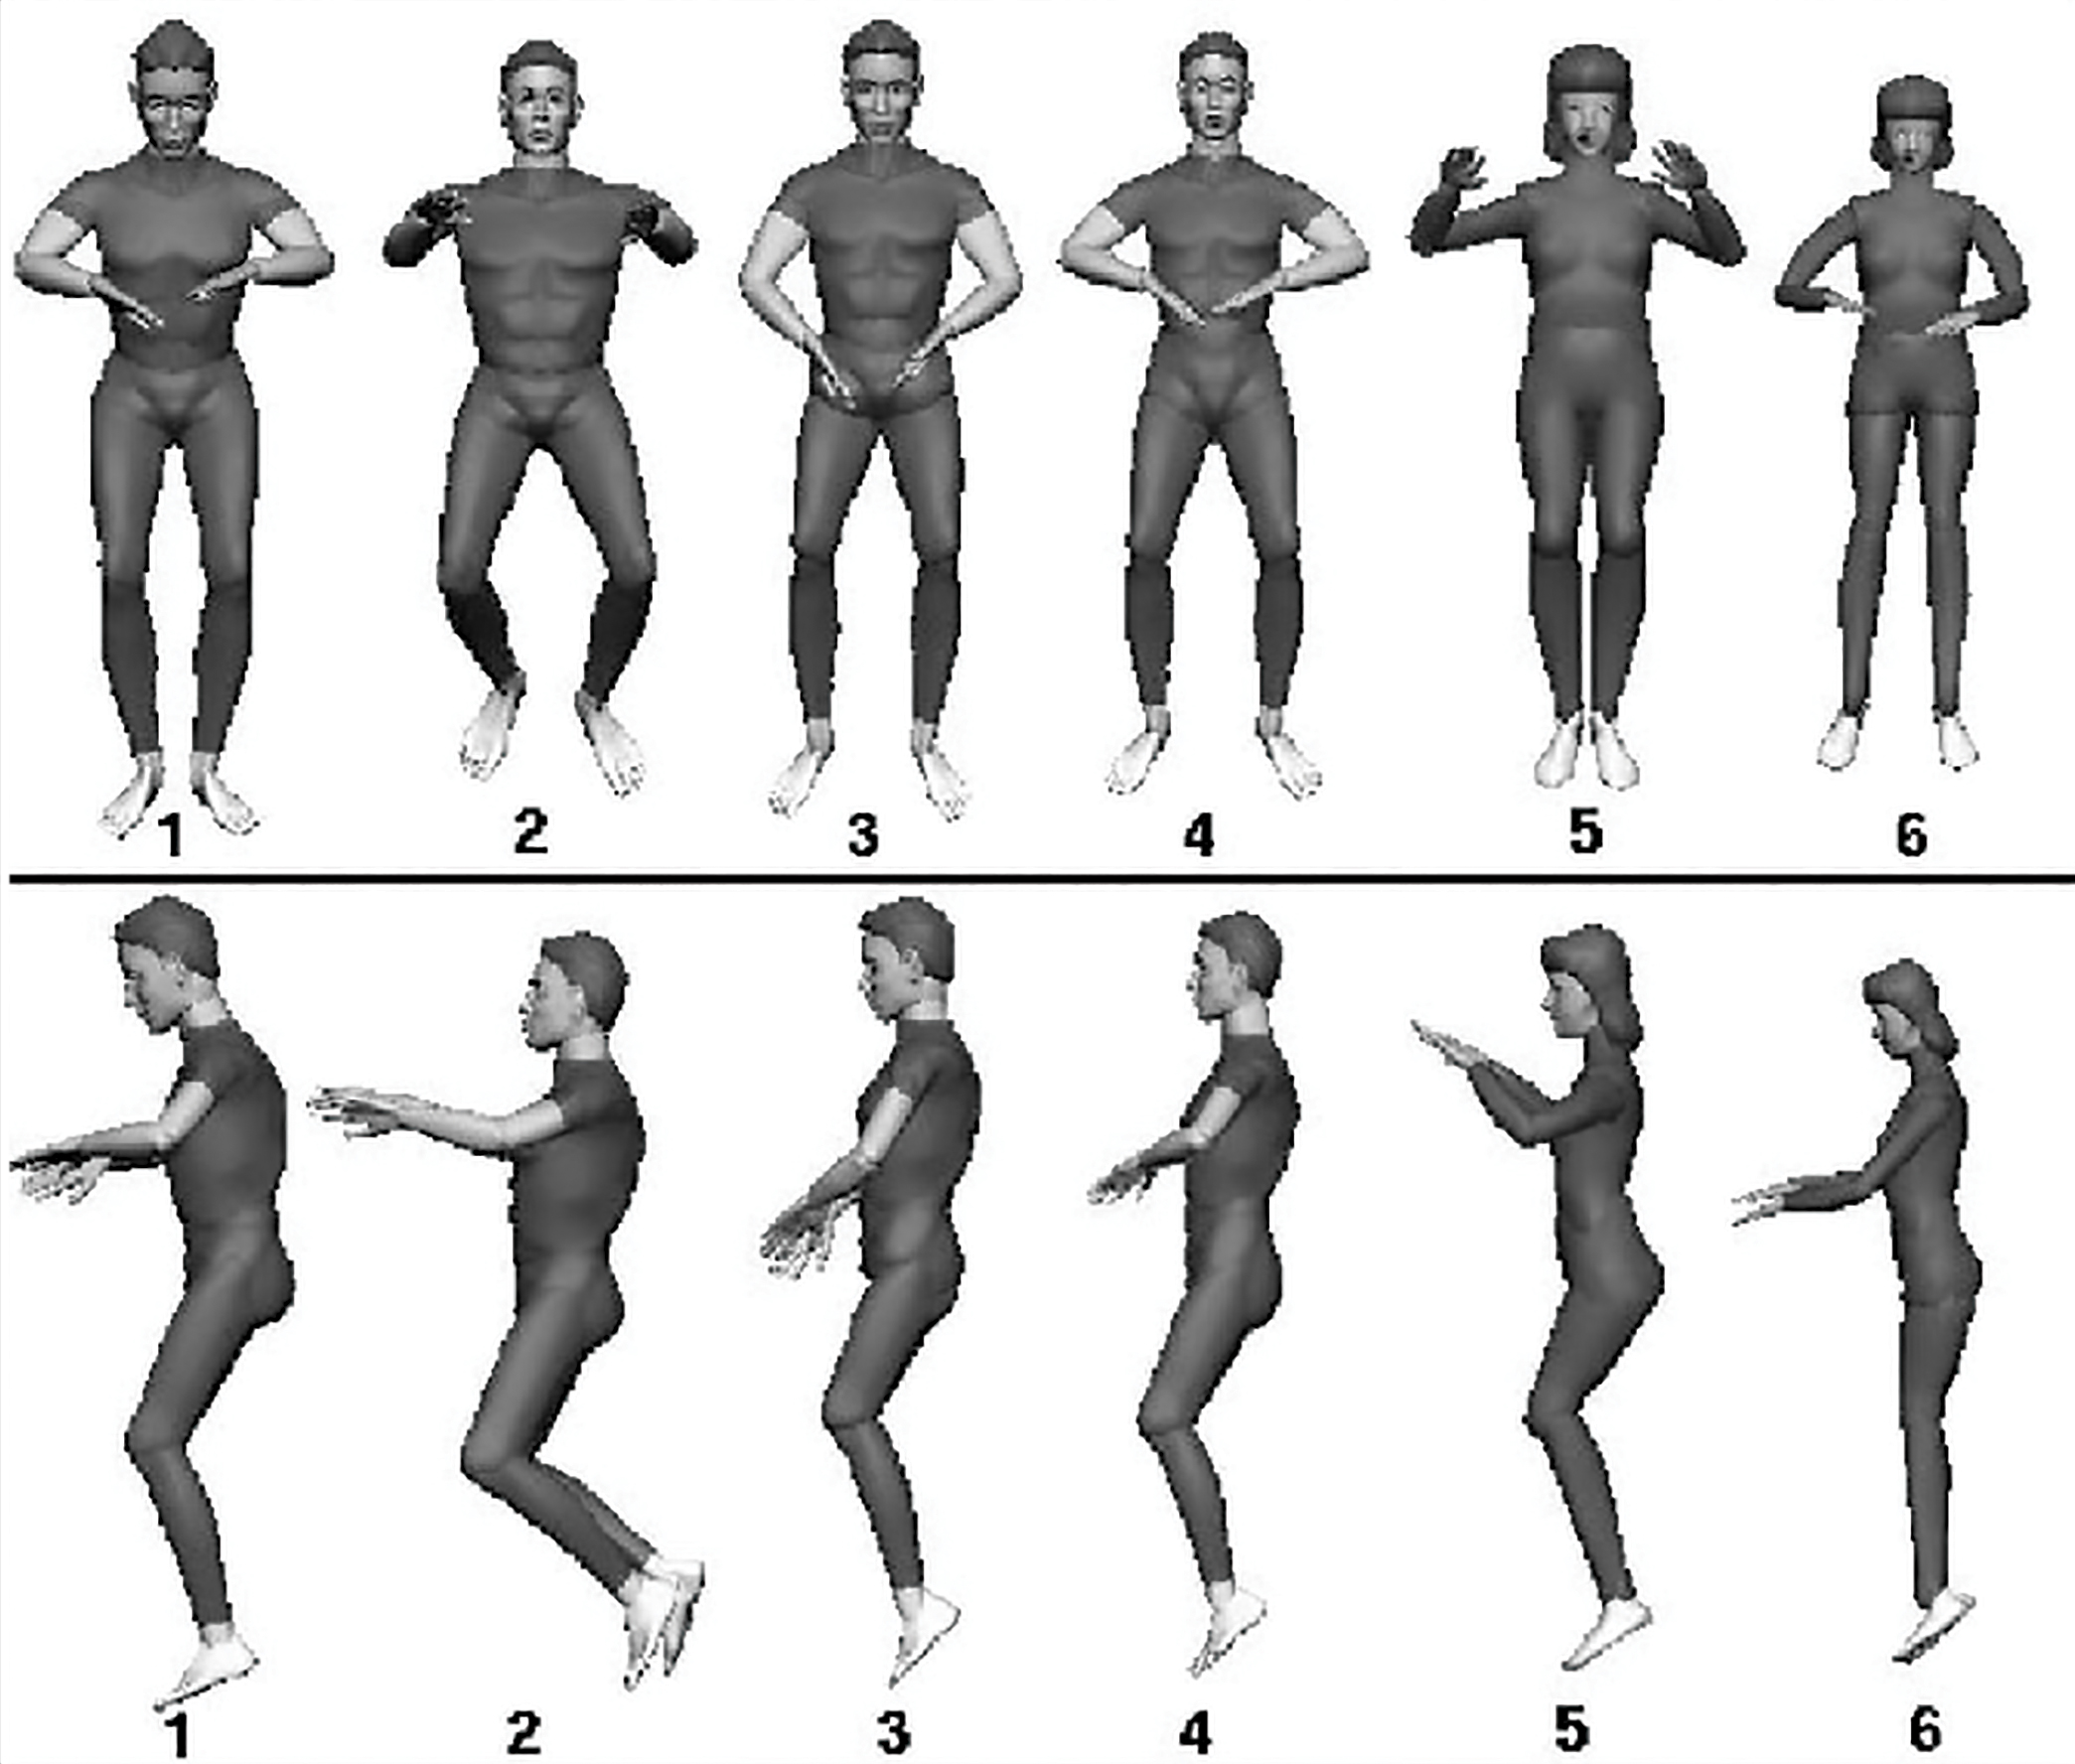 Six frontal and side views of people in various positions of neutral body posture